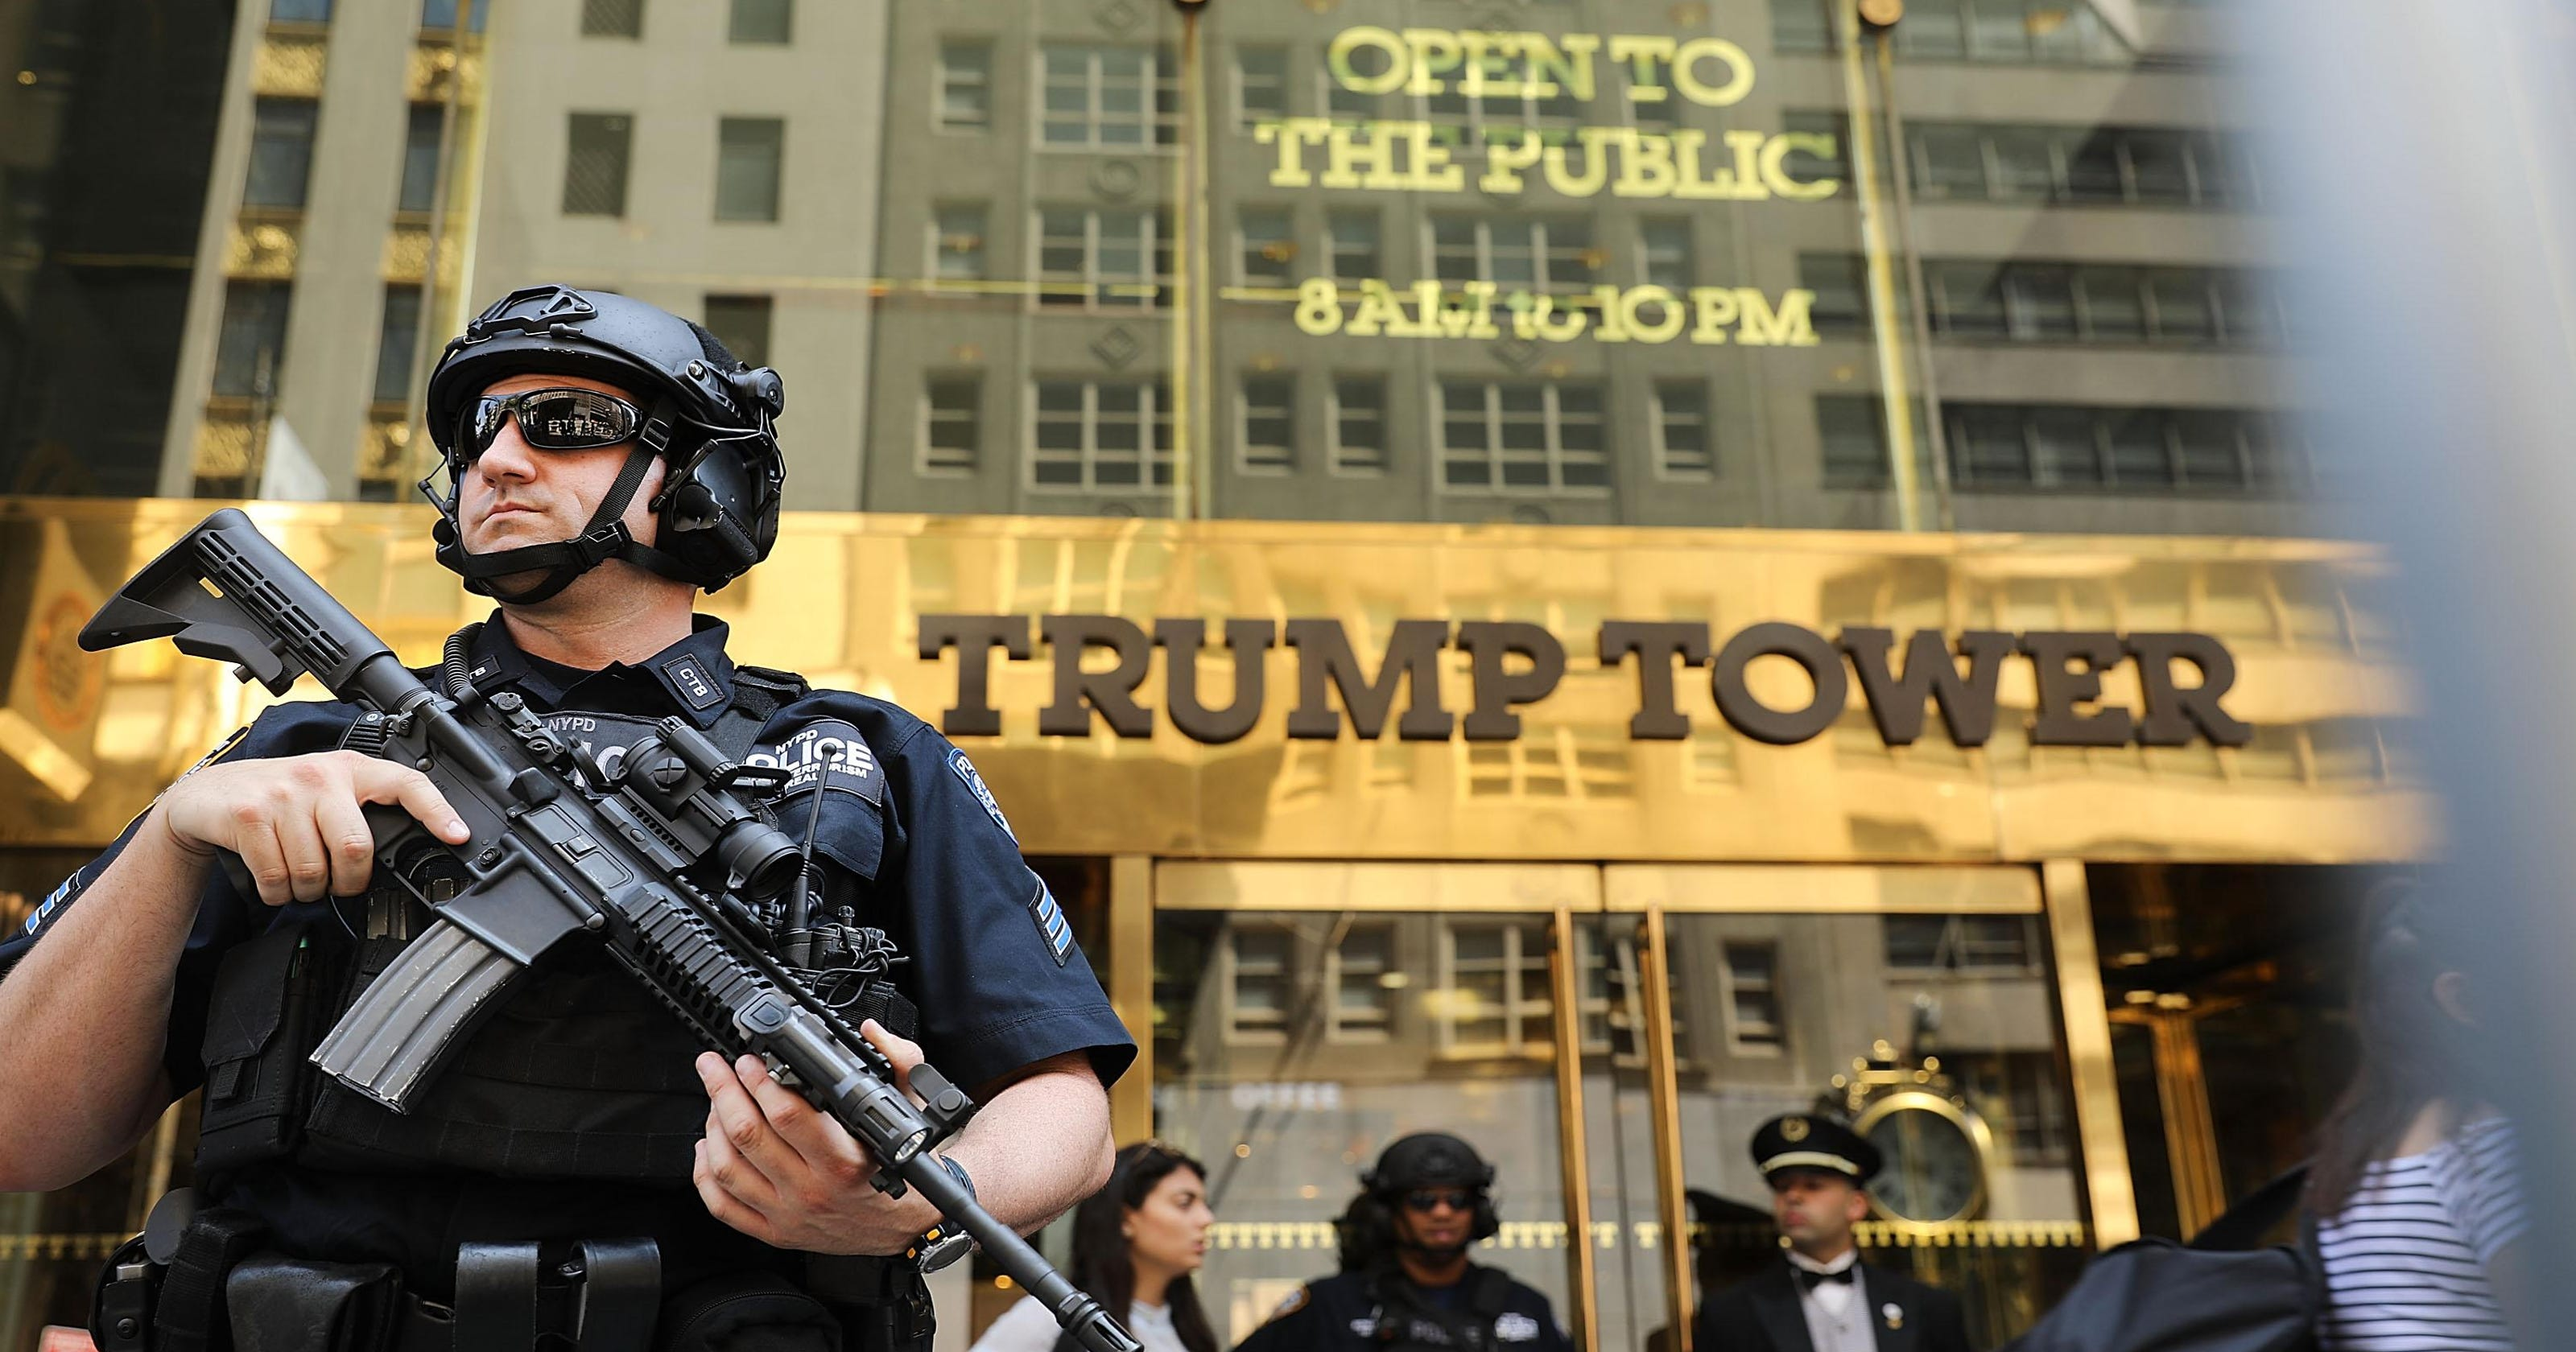 Trump Tower Appeal Has Plummeted Since His Rise To The